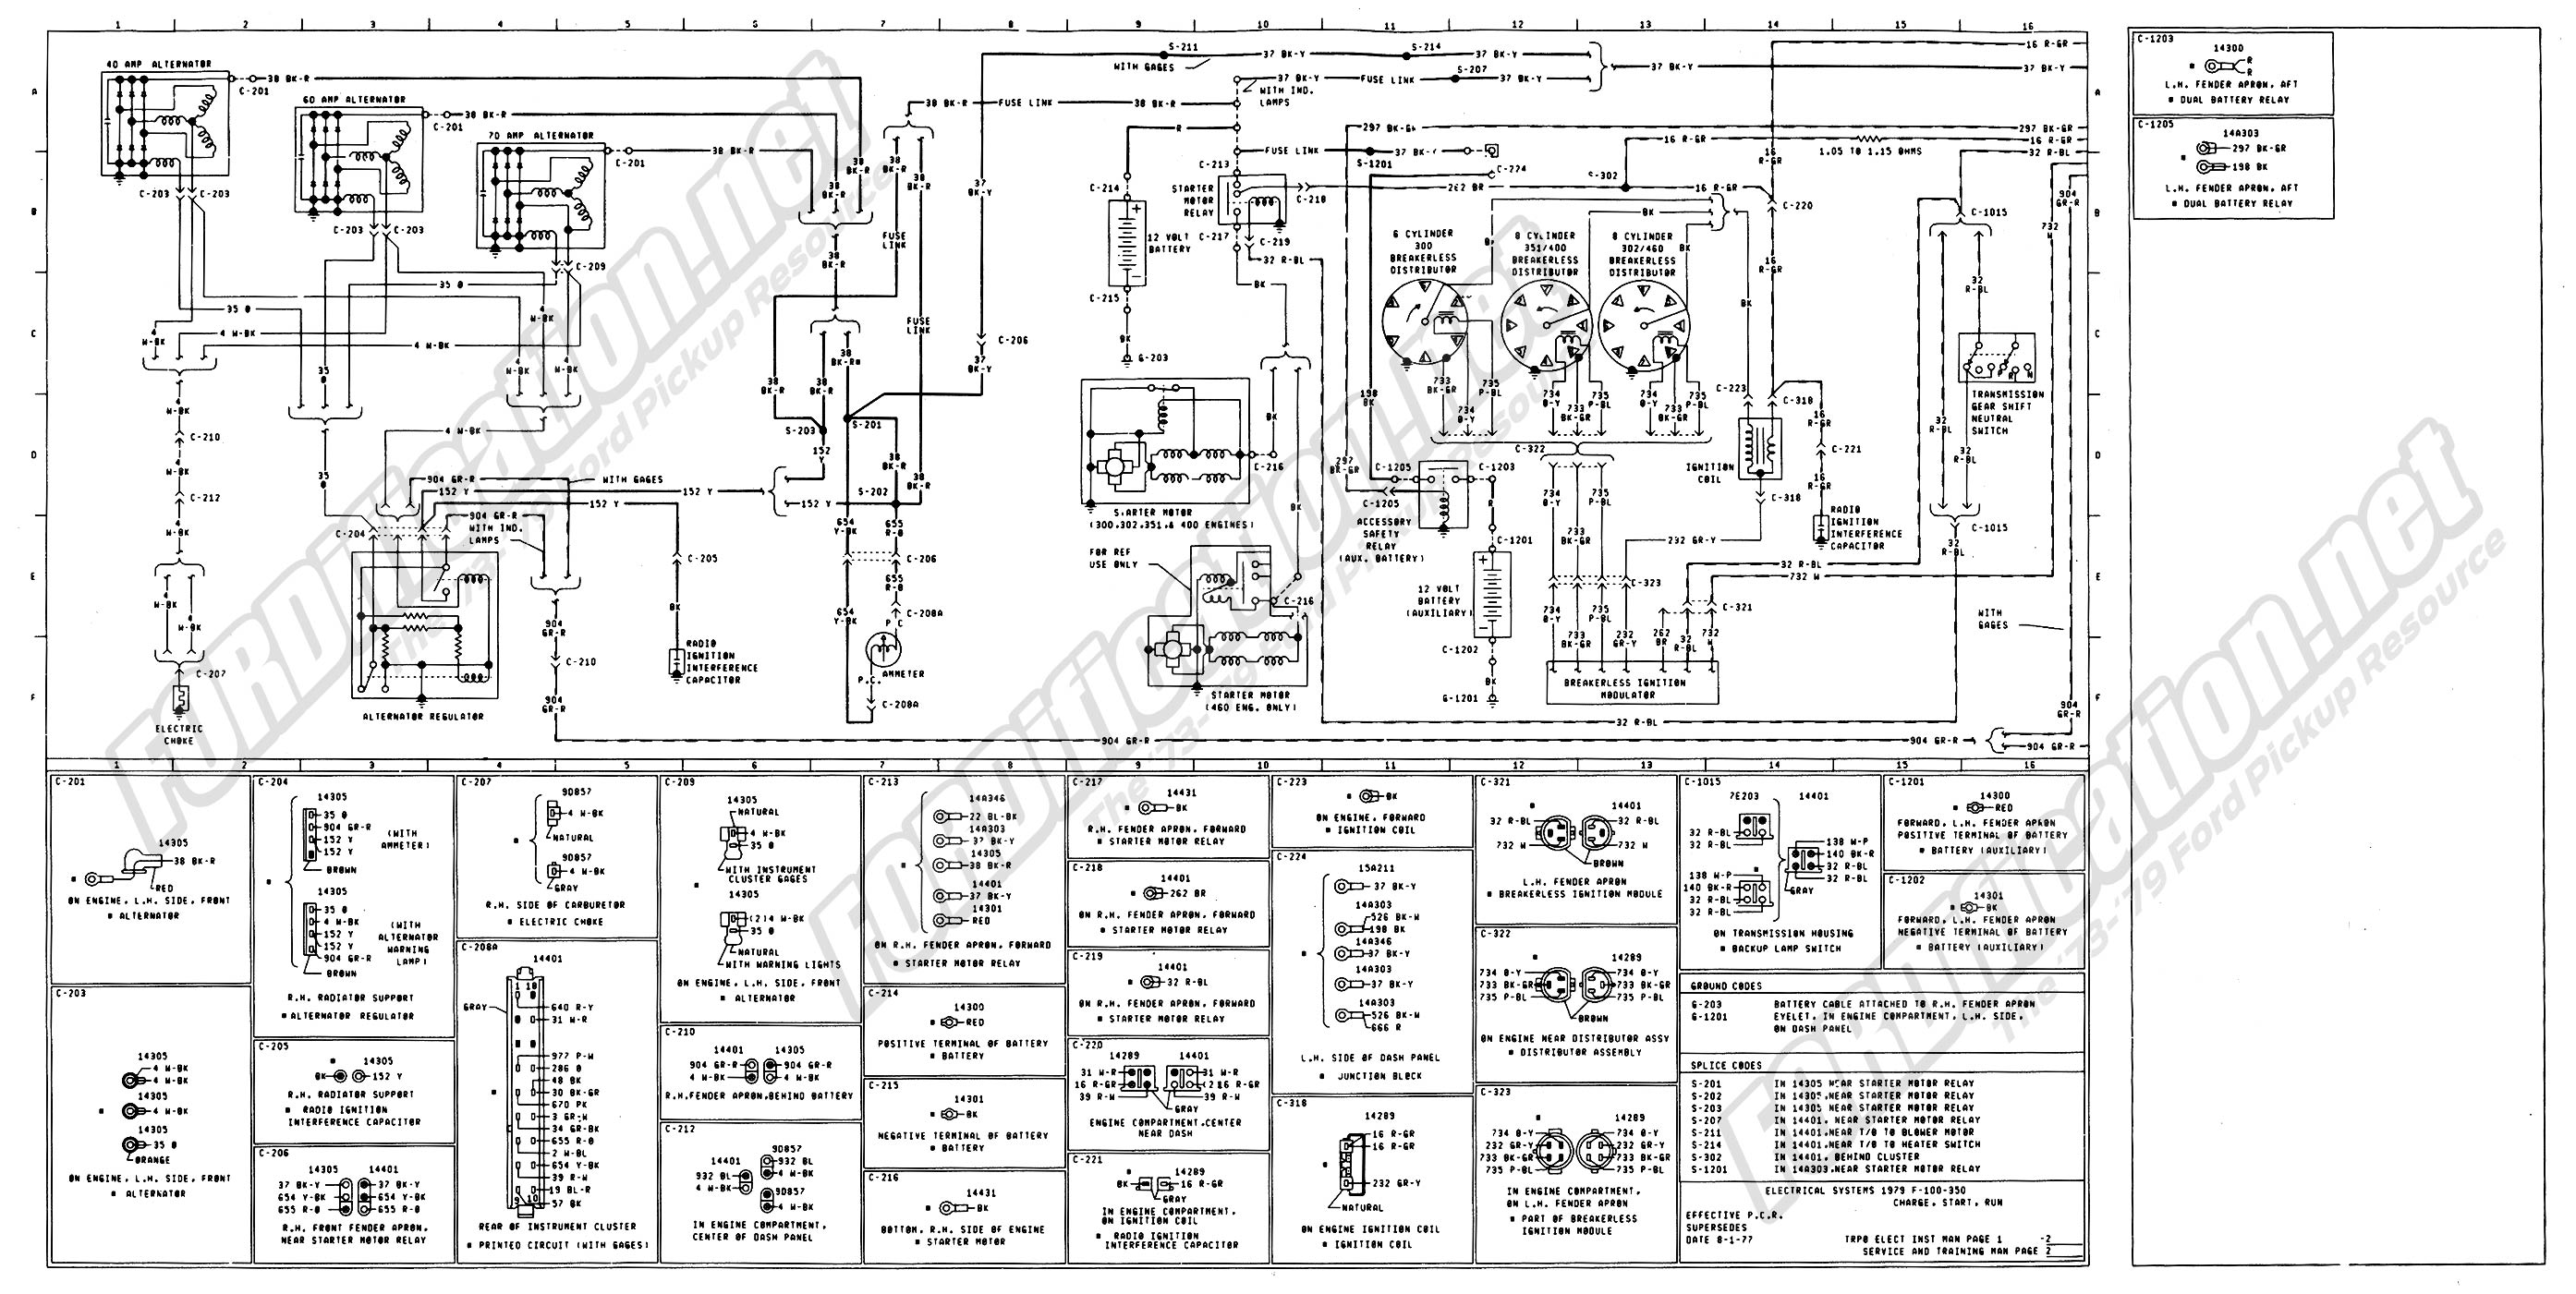 wiring_79master_2of9 1973 1979 ford truck wiring diagrams & schematics fordification net wiring diagram mirrors 2009 ford f150 truck at soozxer.org